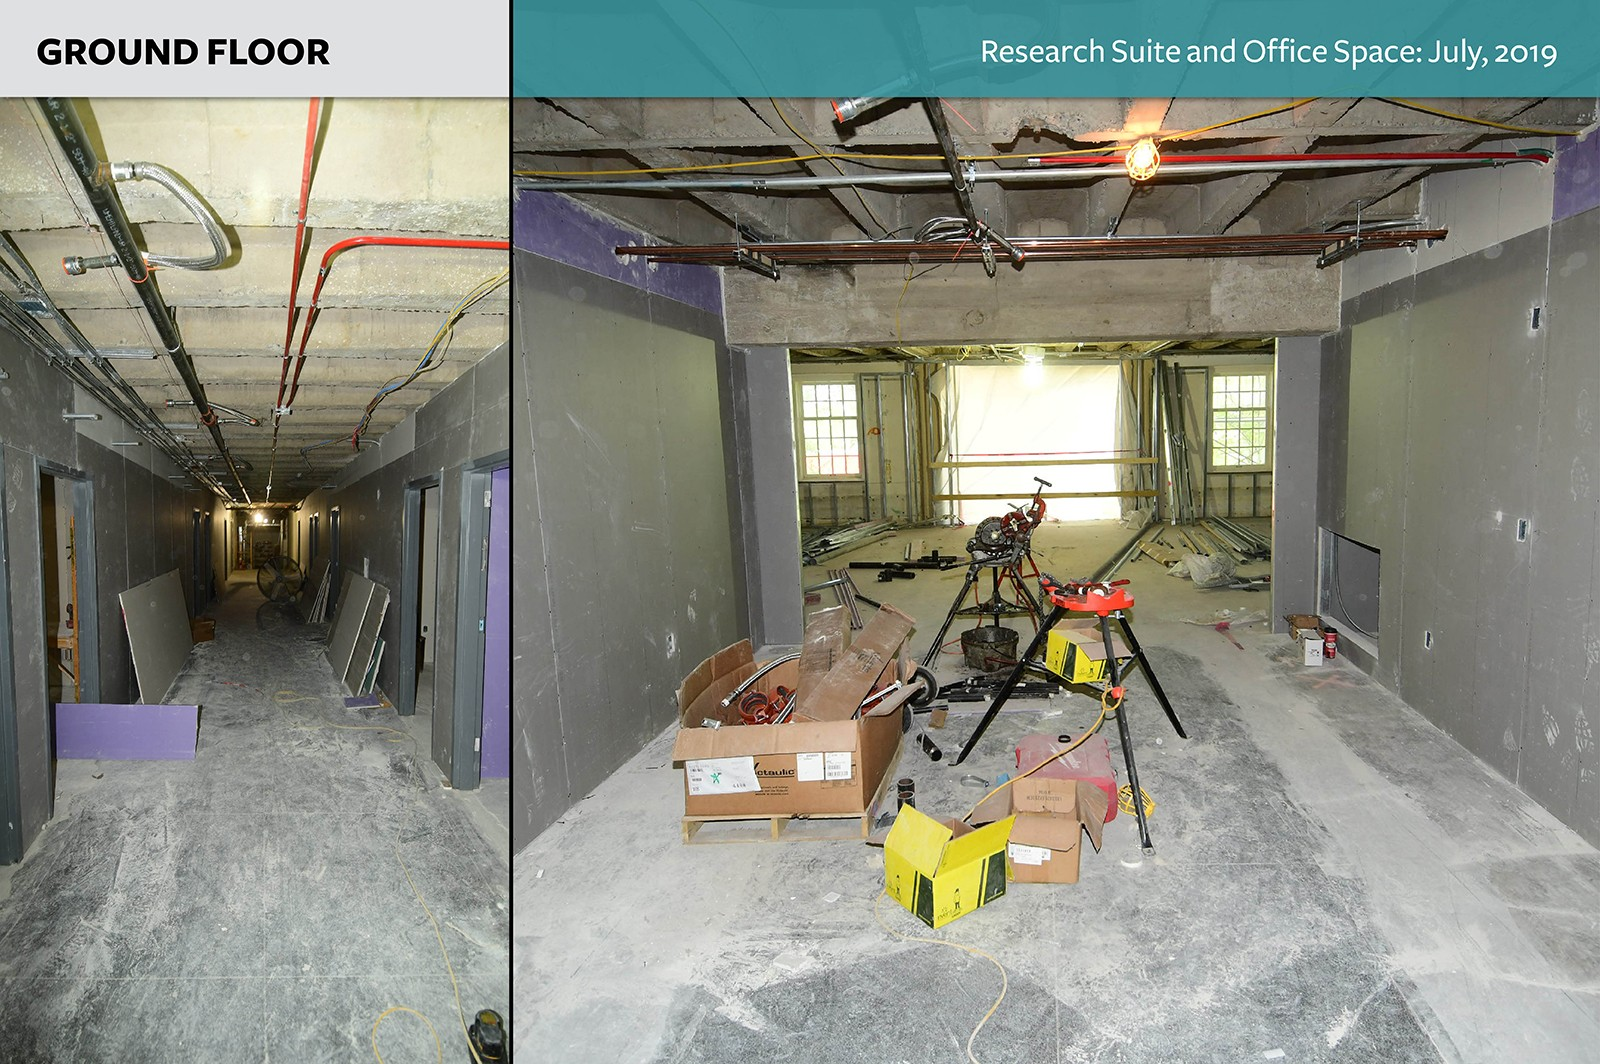 Ground Floor: Research Suite and Office Space as of July, 2019